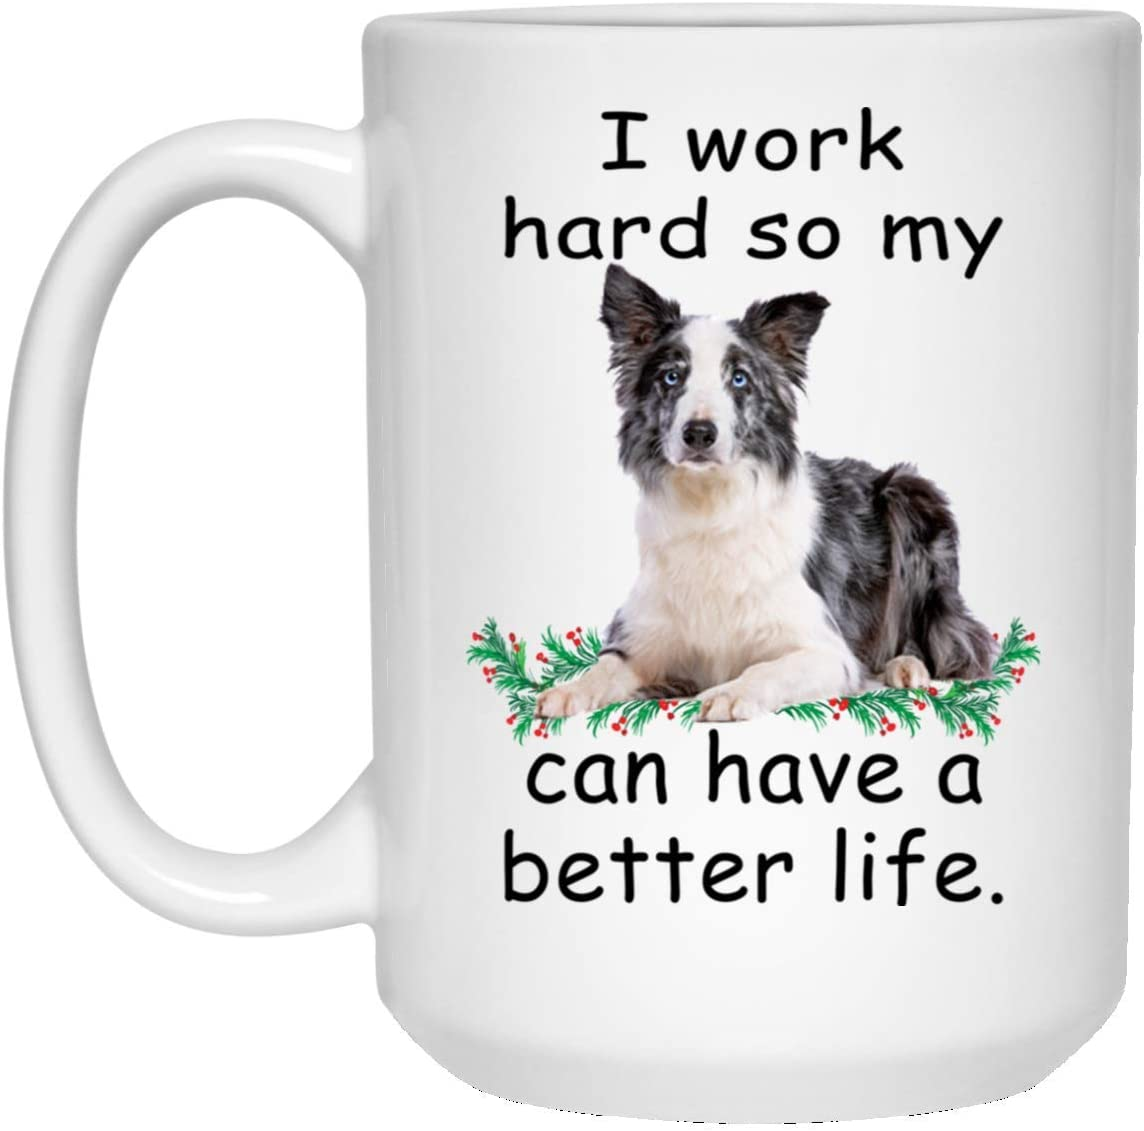 Amazon Com Funny Saying Gifts Border Collie Blue Merle I Work Hard So My Dog Can Have A Better Coffee Mug 15oz Kitchen Dining